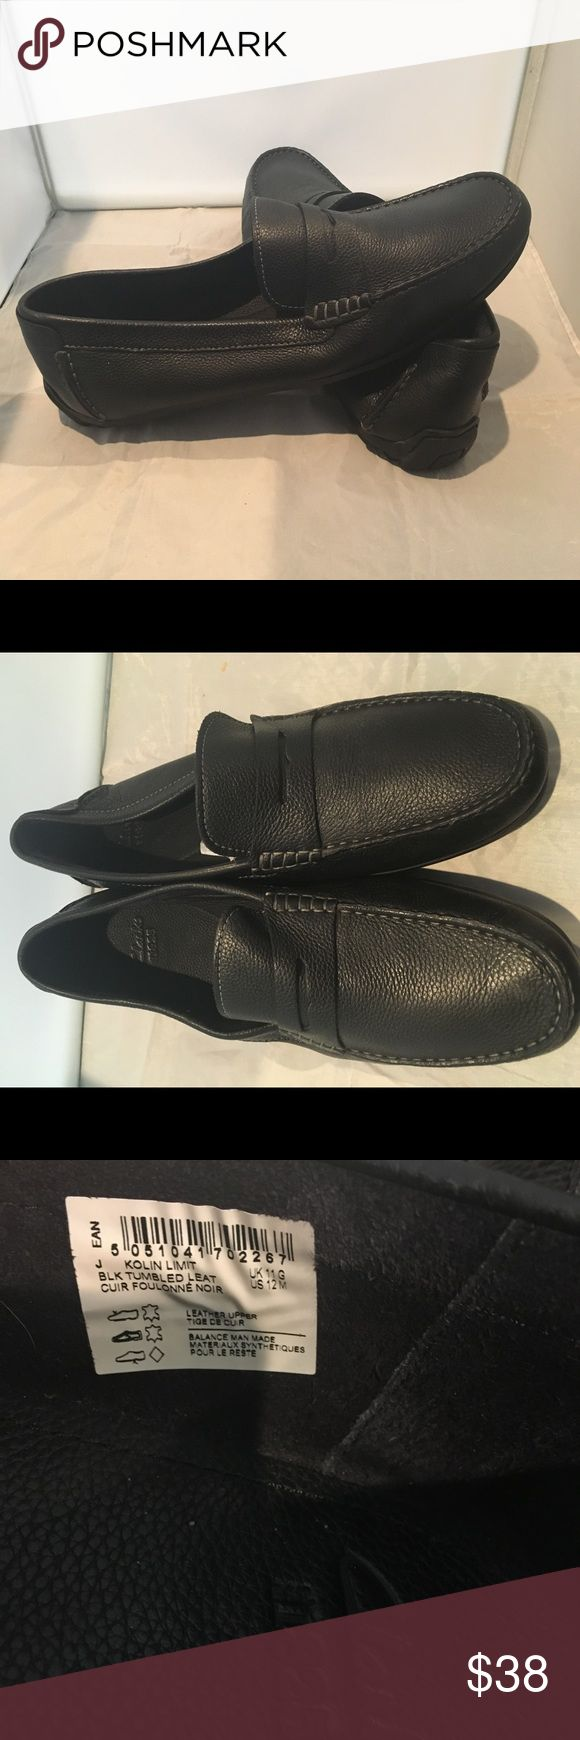 NWOT- Men's Clarks Driver Loafers Men's Clarks Driver loafers . New without tags/box! Super comfortable Size 12 Clarks Shoes Loafers & Slip-Ons